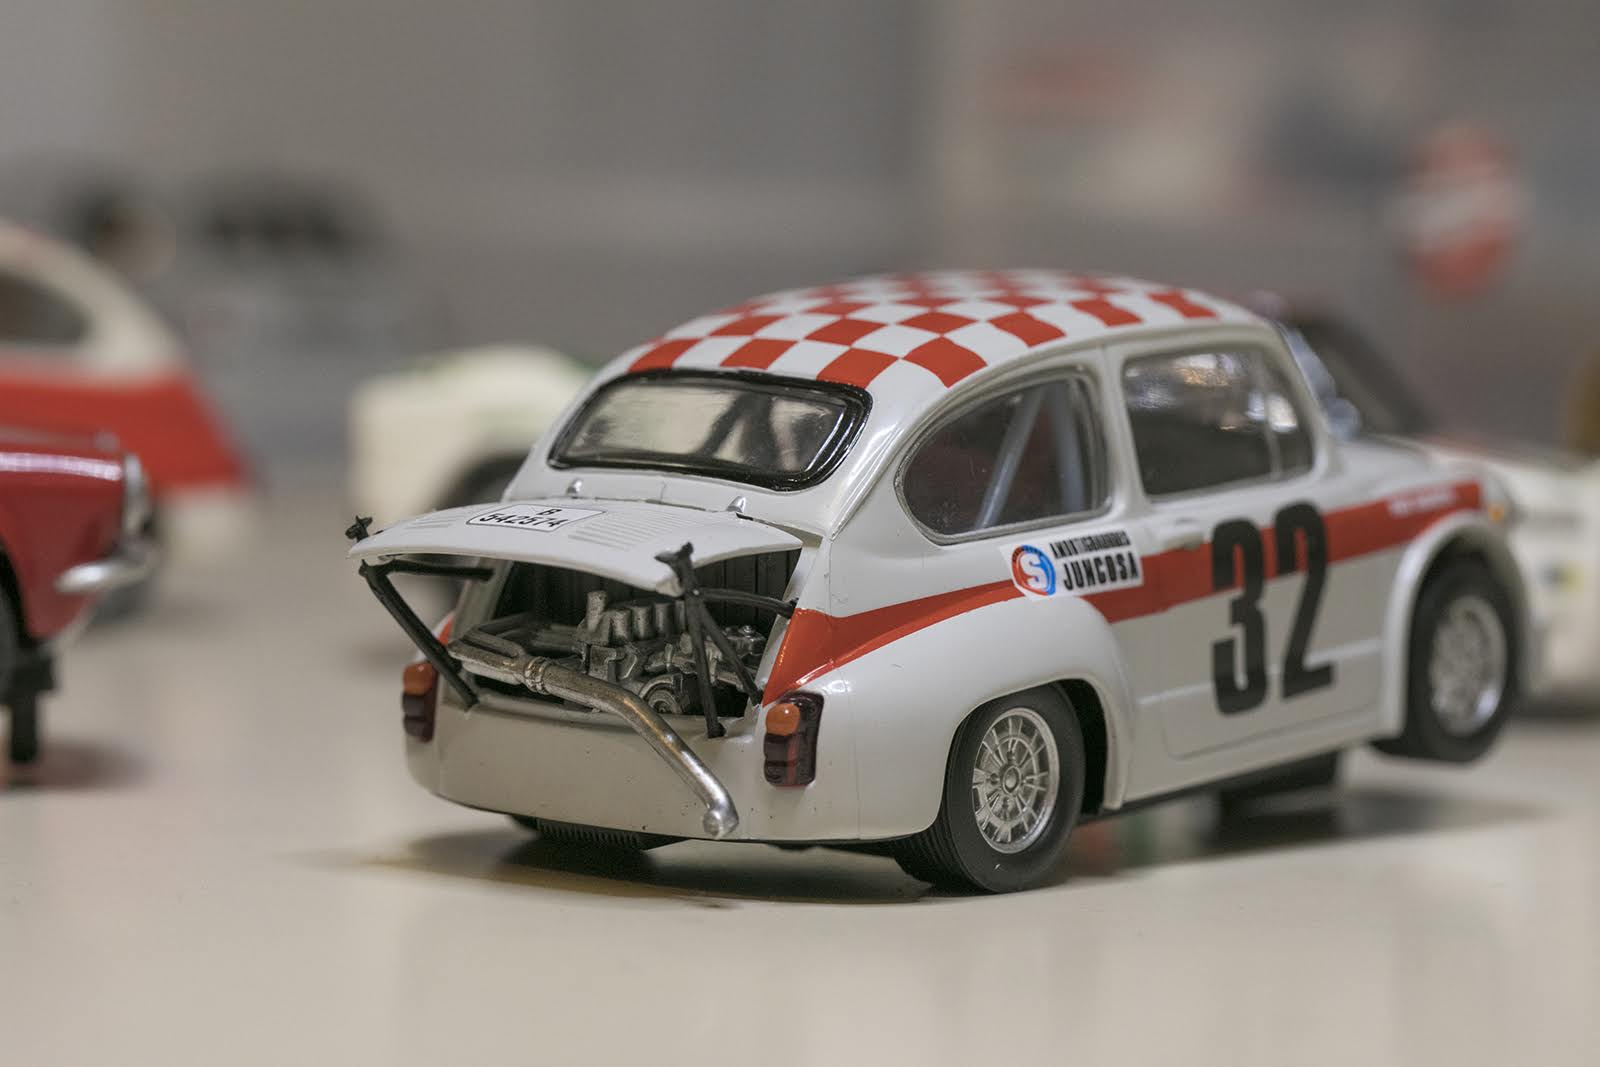 190125_Abarth_Slot_Car_05